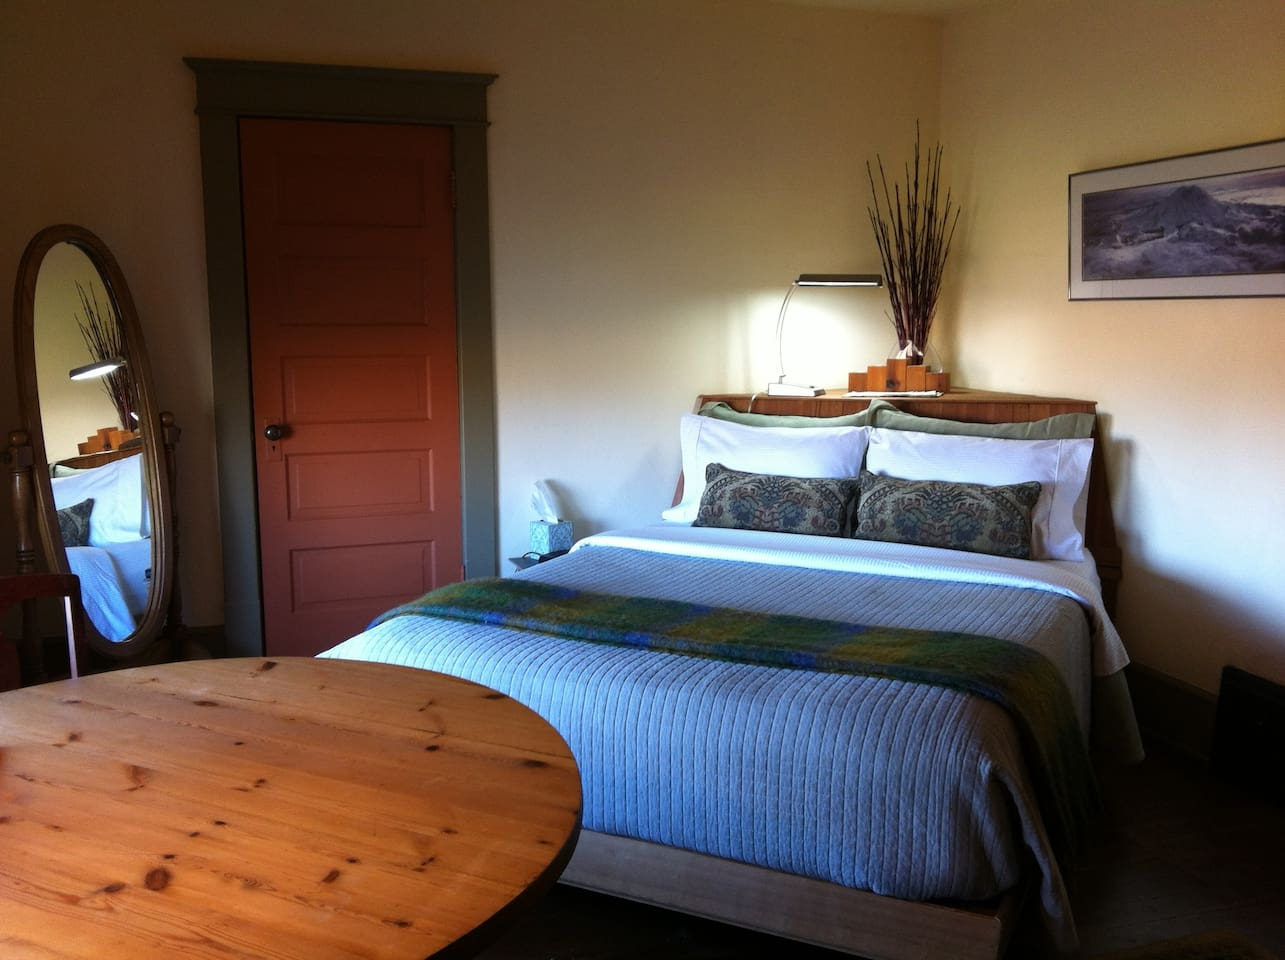 The North room bed has a built in headboard made from a recycled barn.